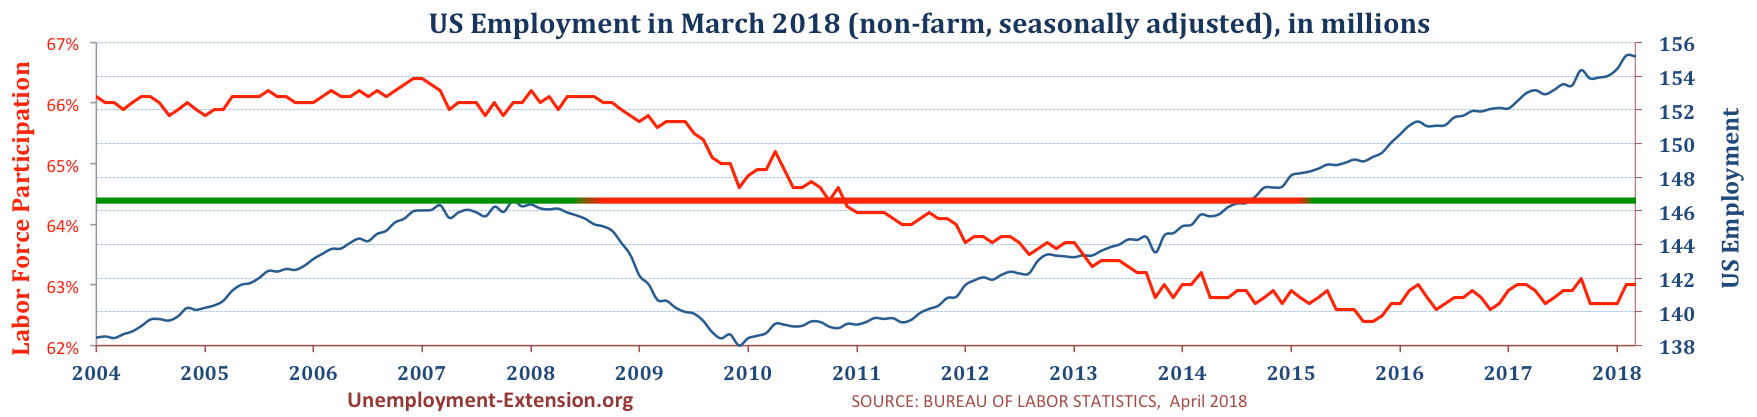 Total US Employment (non-farm, seasonally adjusted) in March of 2018. US economy has lost approximately 10 million jobs in comparison to pre-resession level.